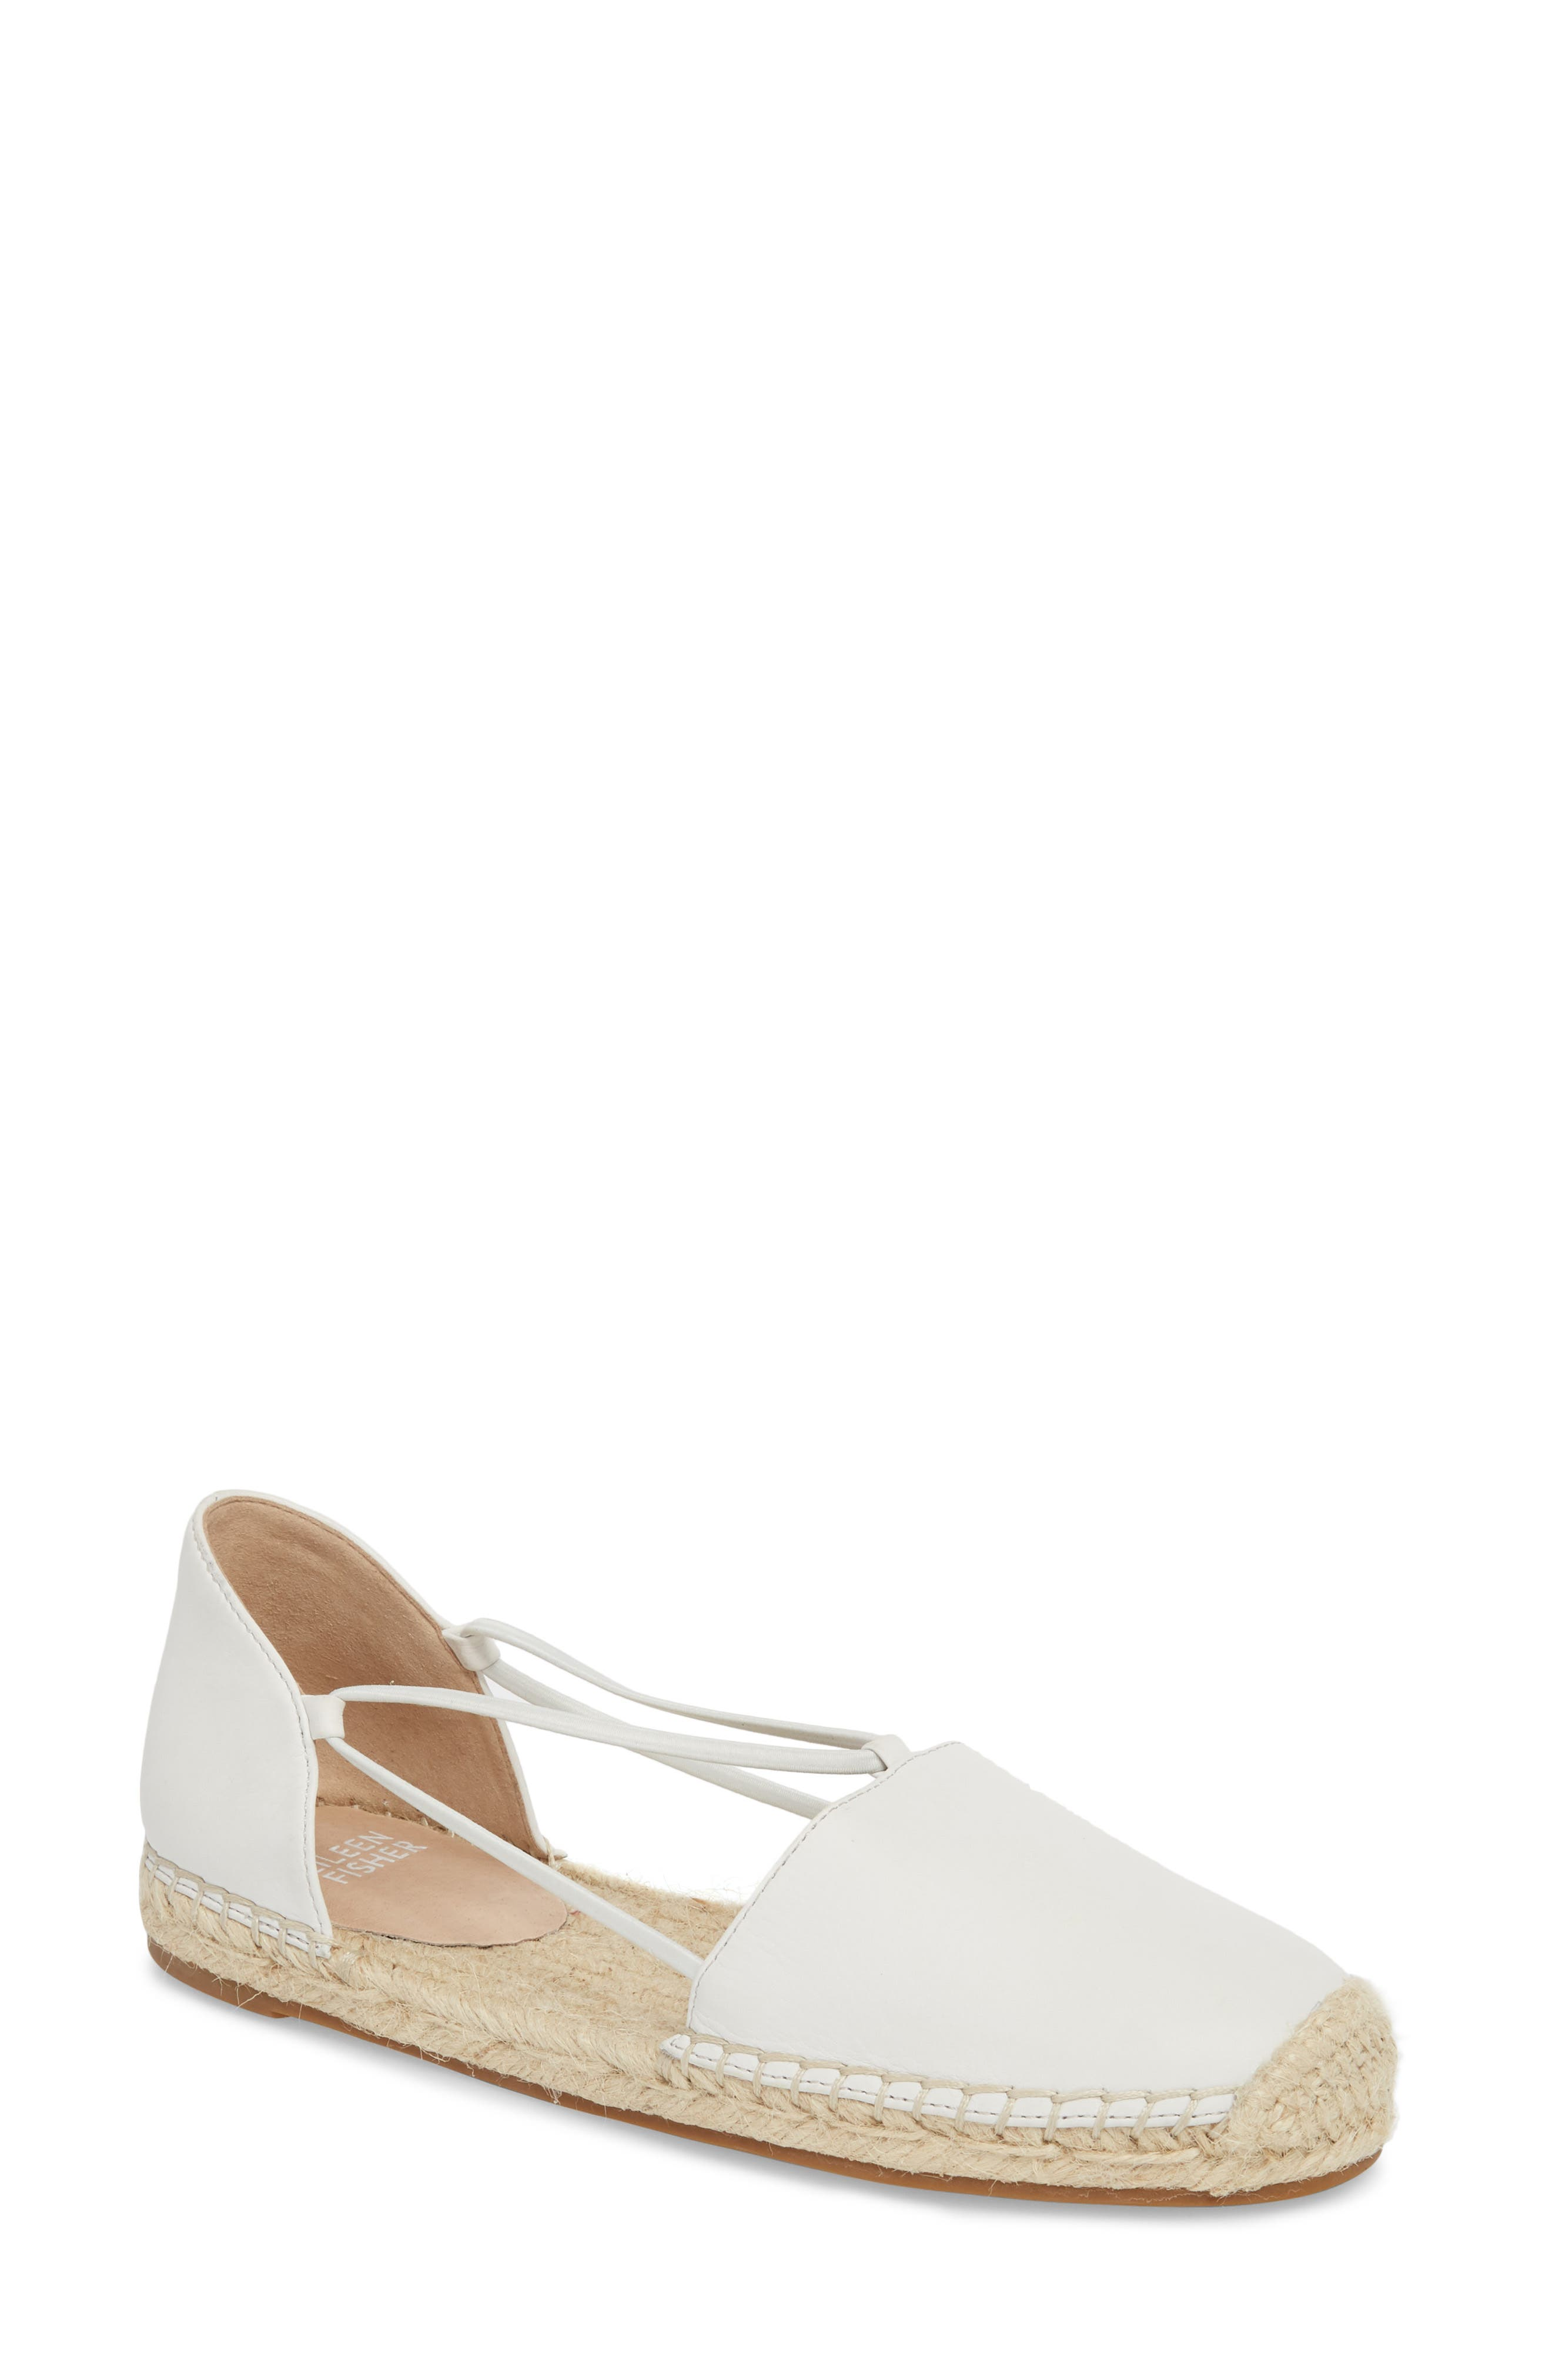 Lee Espadrille Flat,                         Main,                         color, White Leather